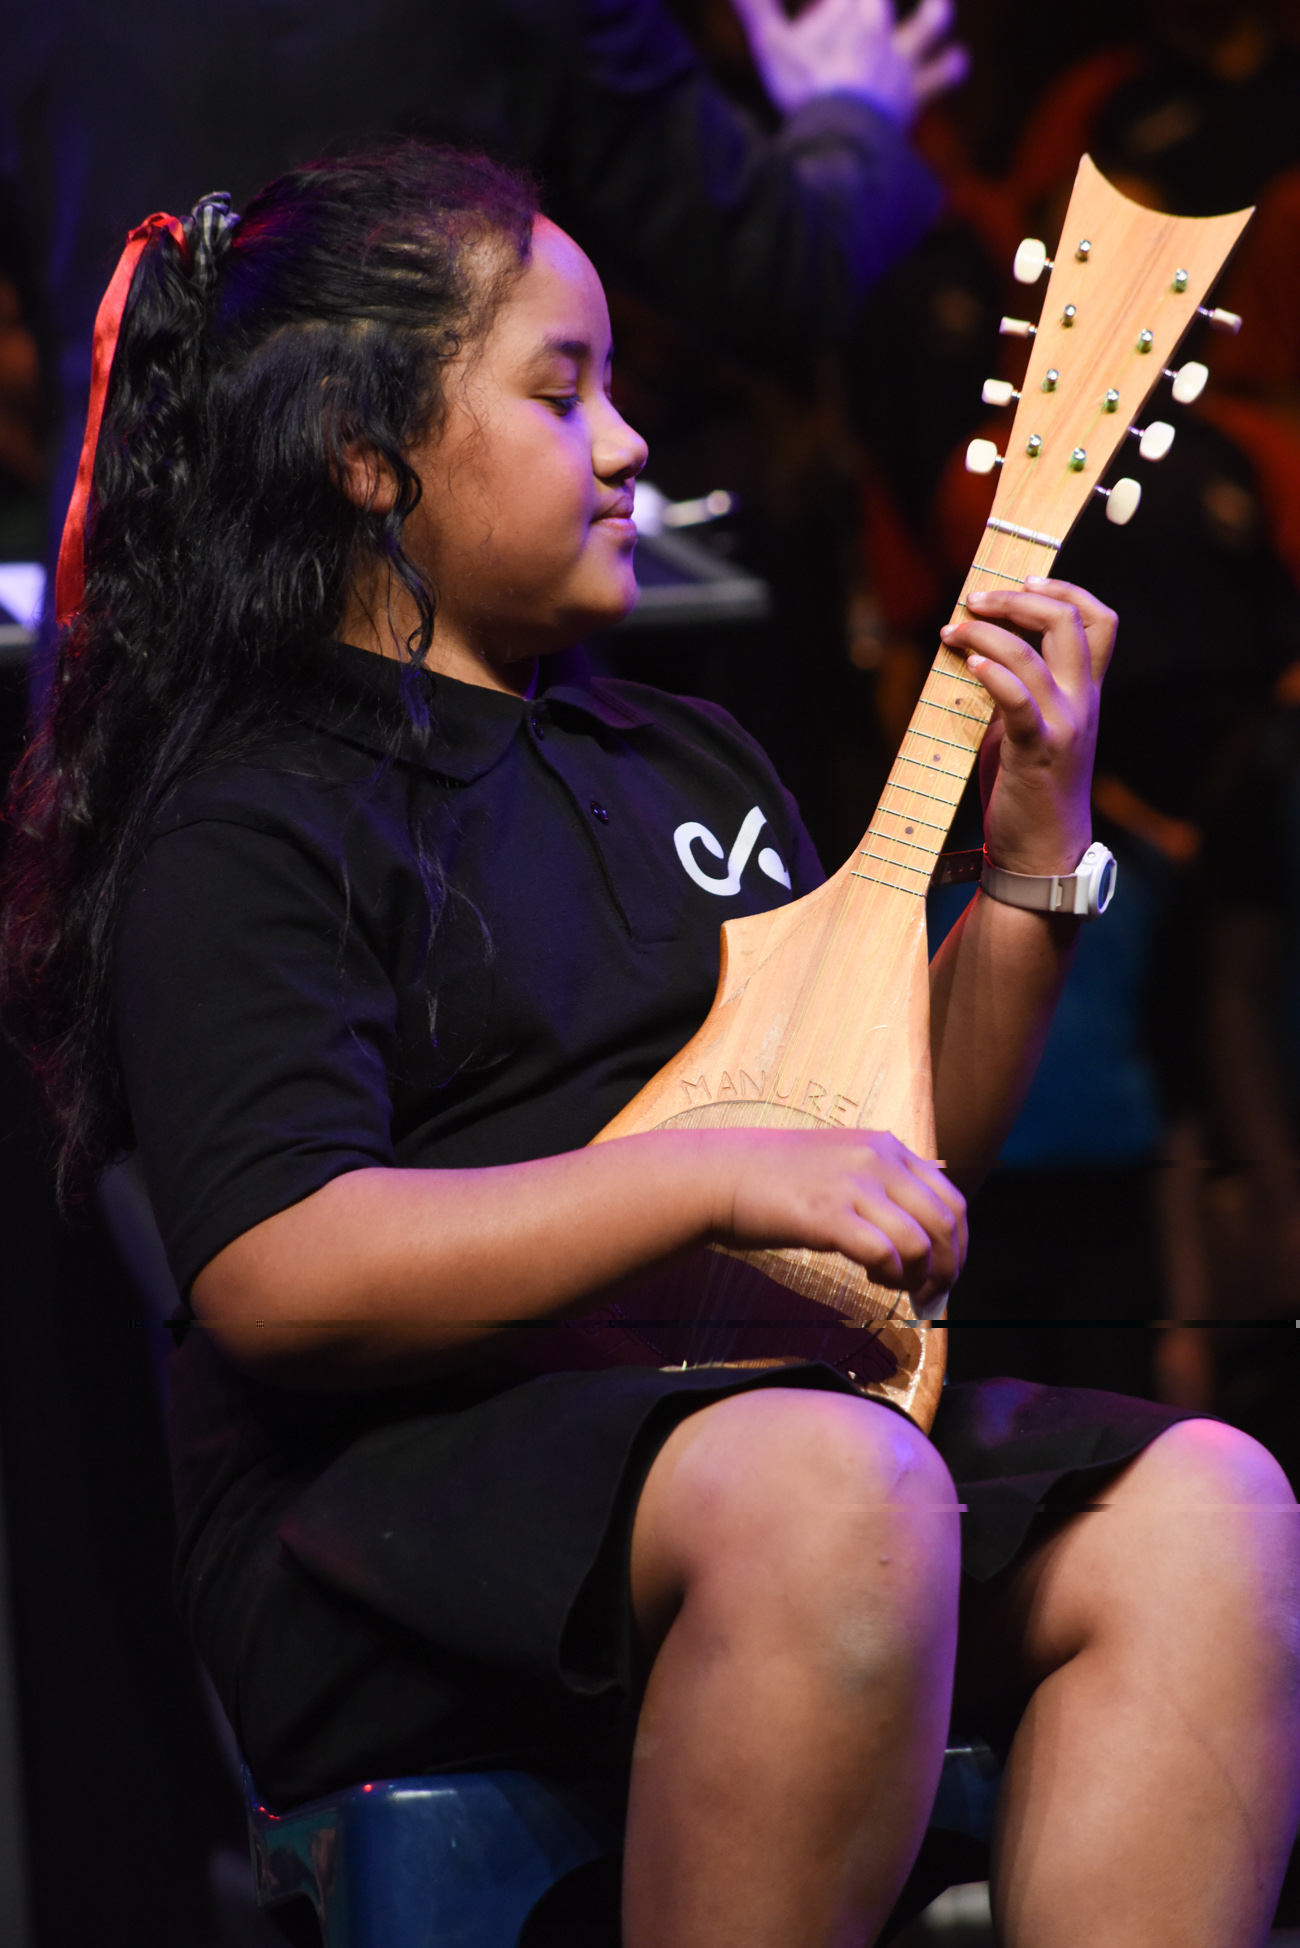 A young girl playing a traditional ukulele of Pacific Islands